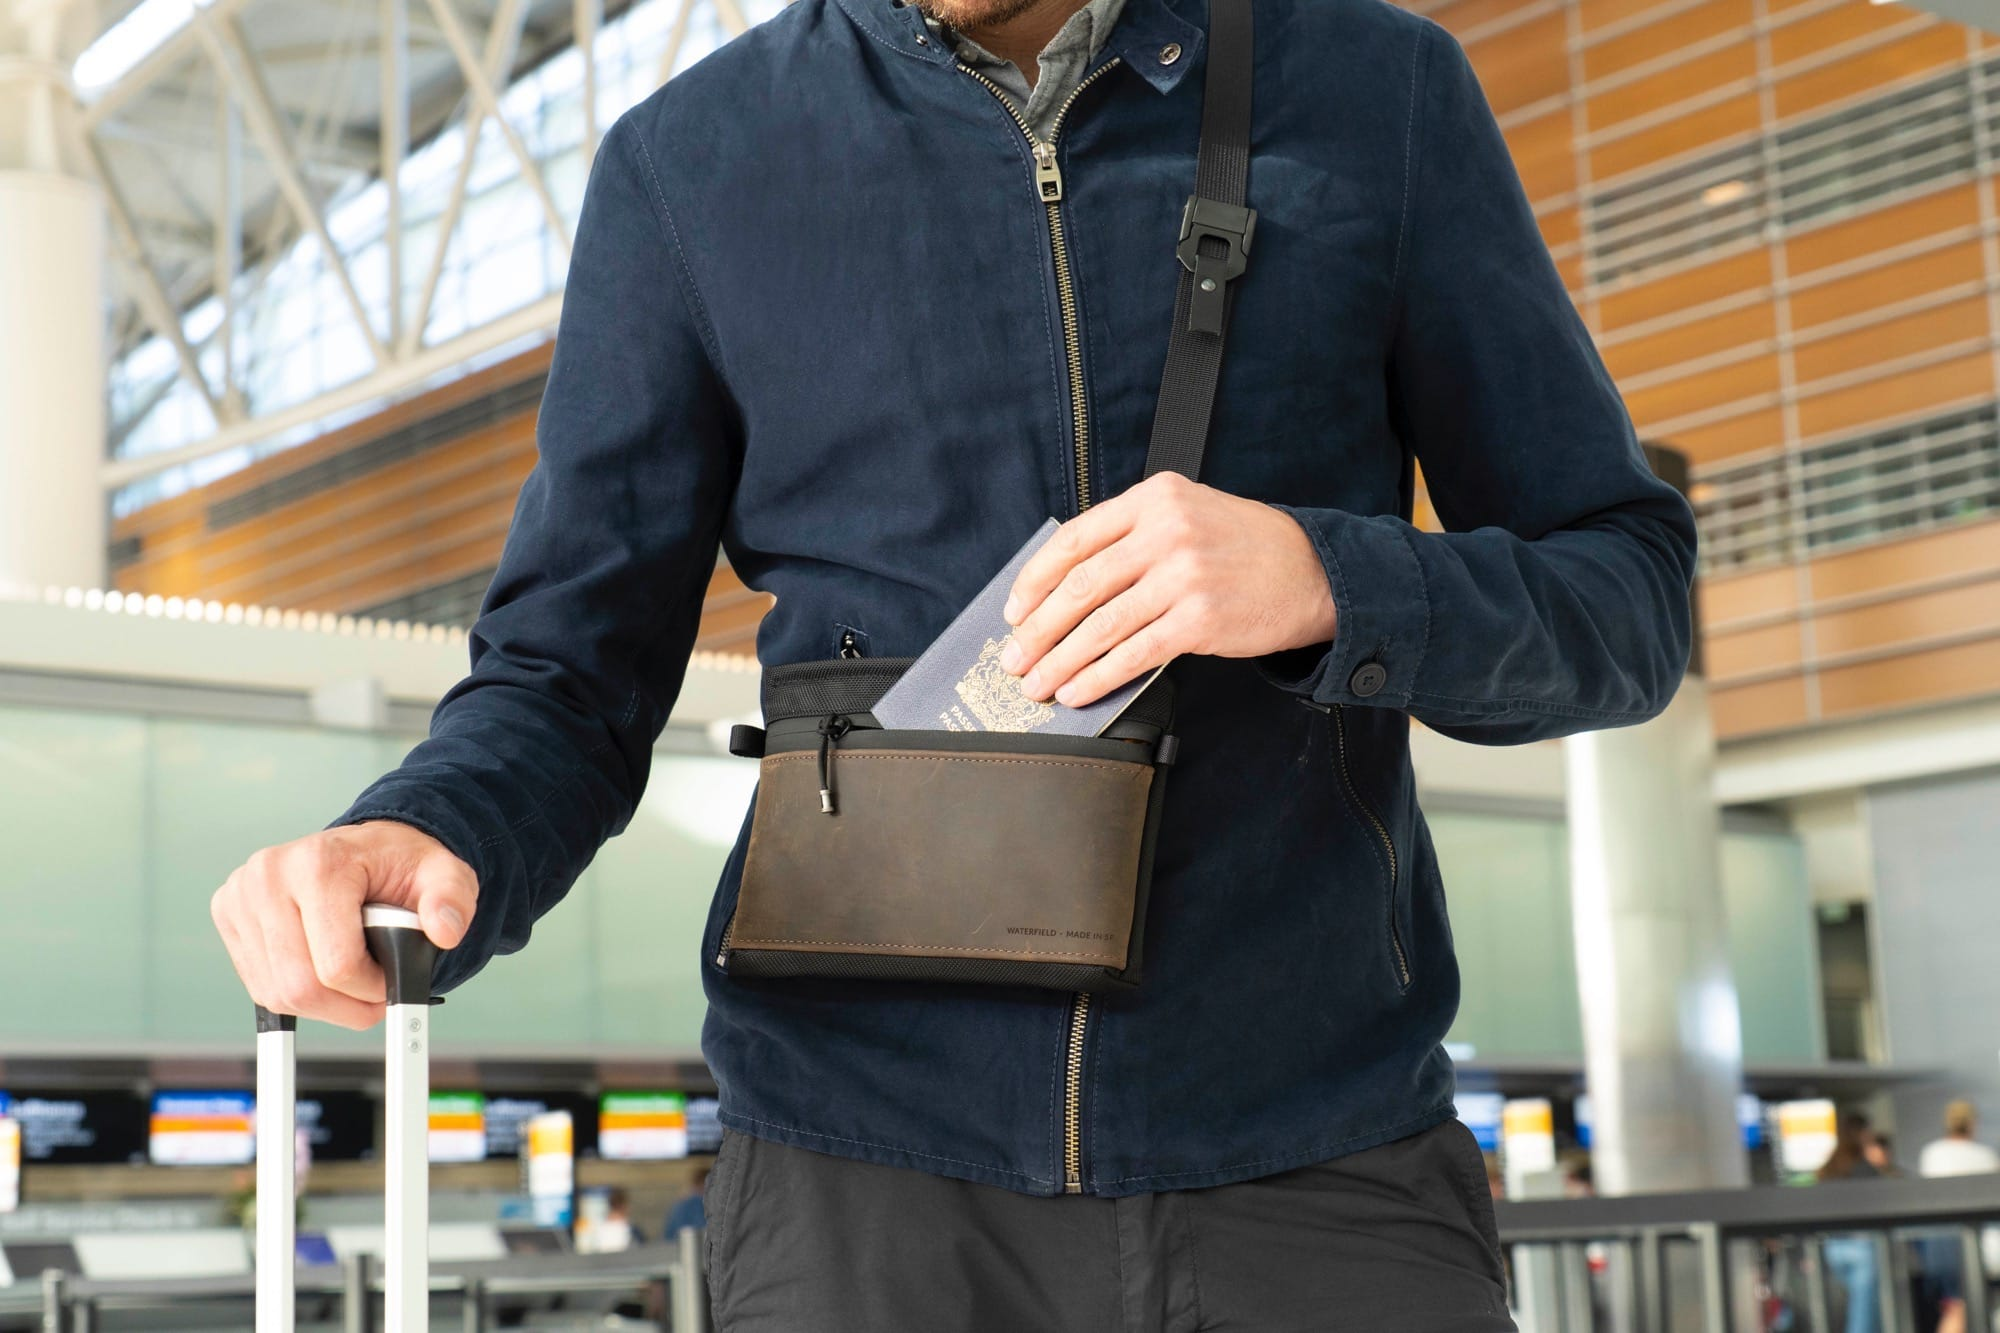 SF Bags Marqui Crossbody Pouch is good for travel.